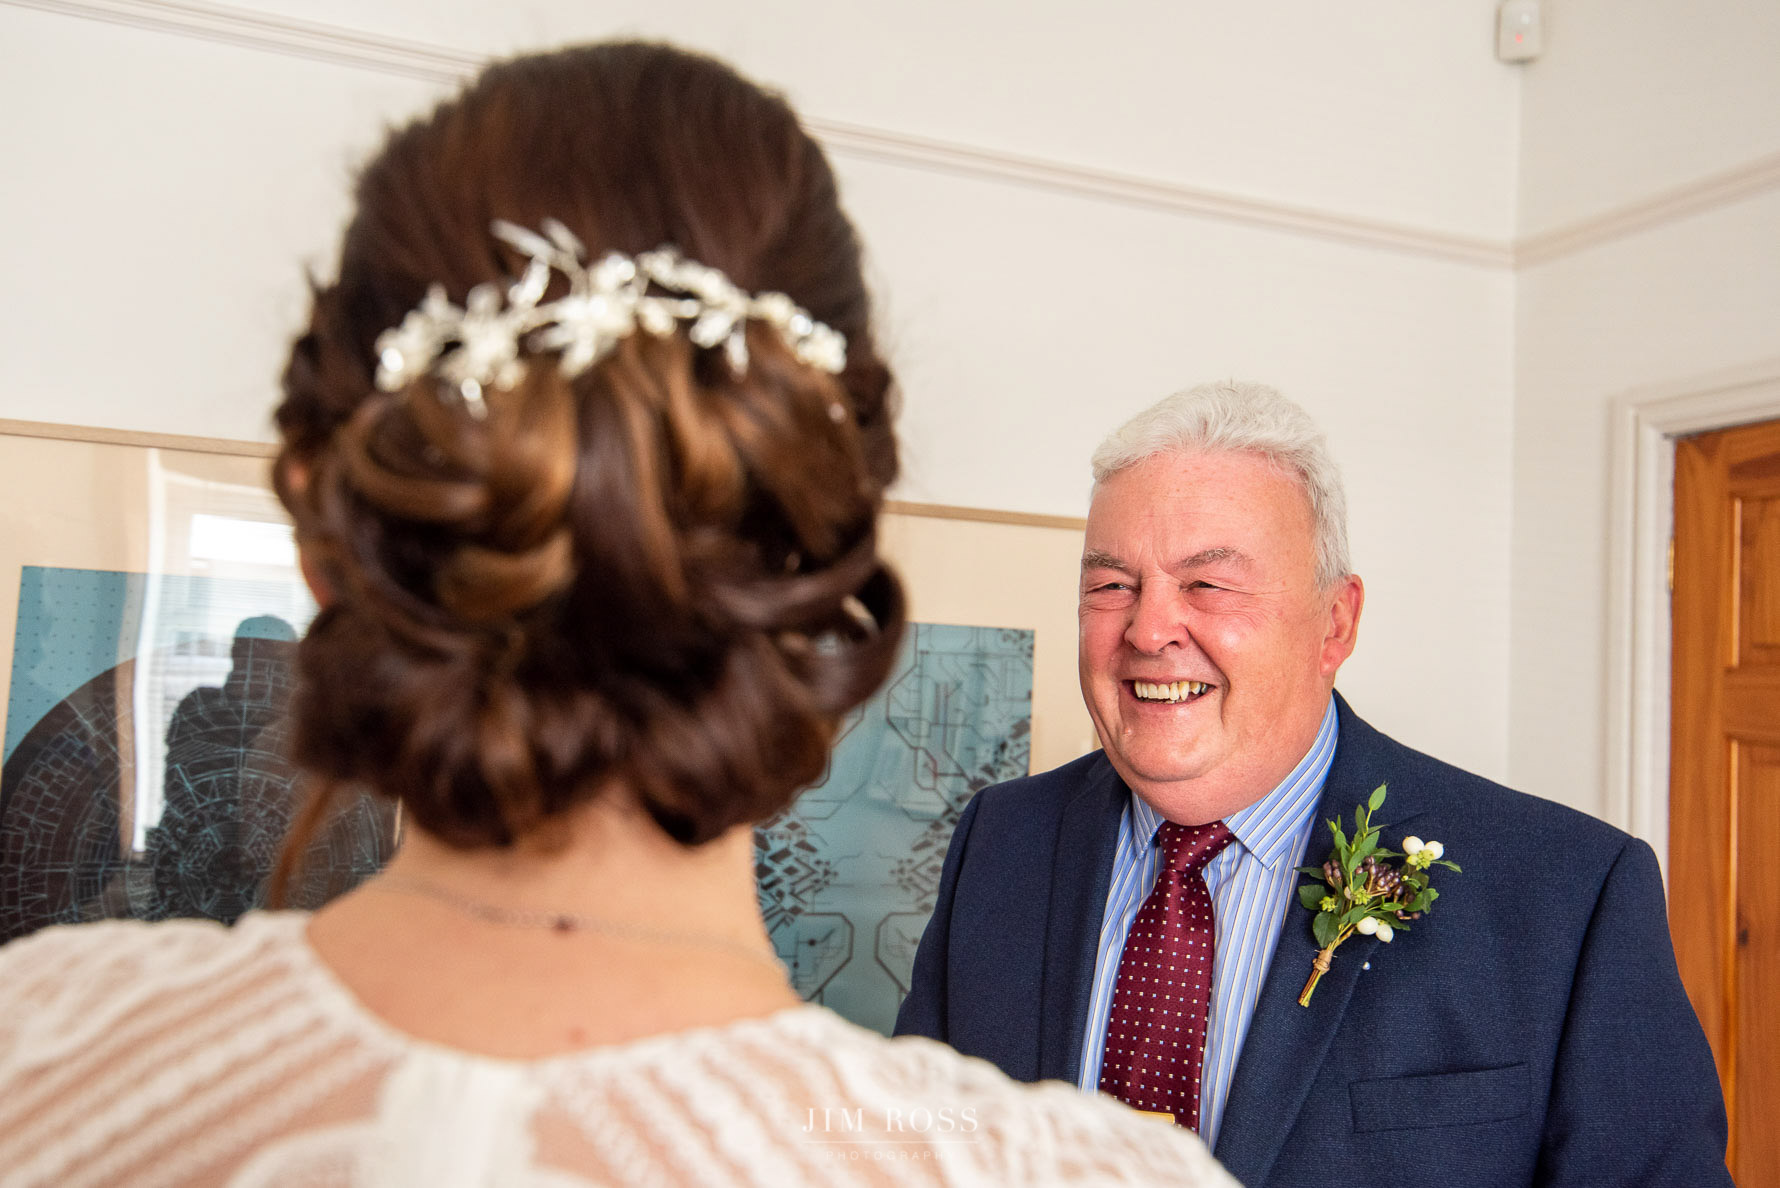 Father of the bride bursting with pride